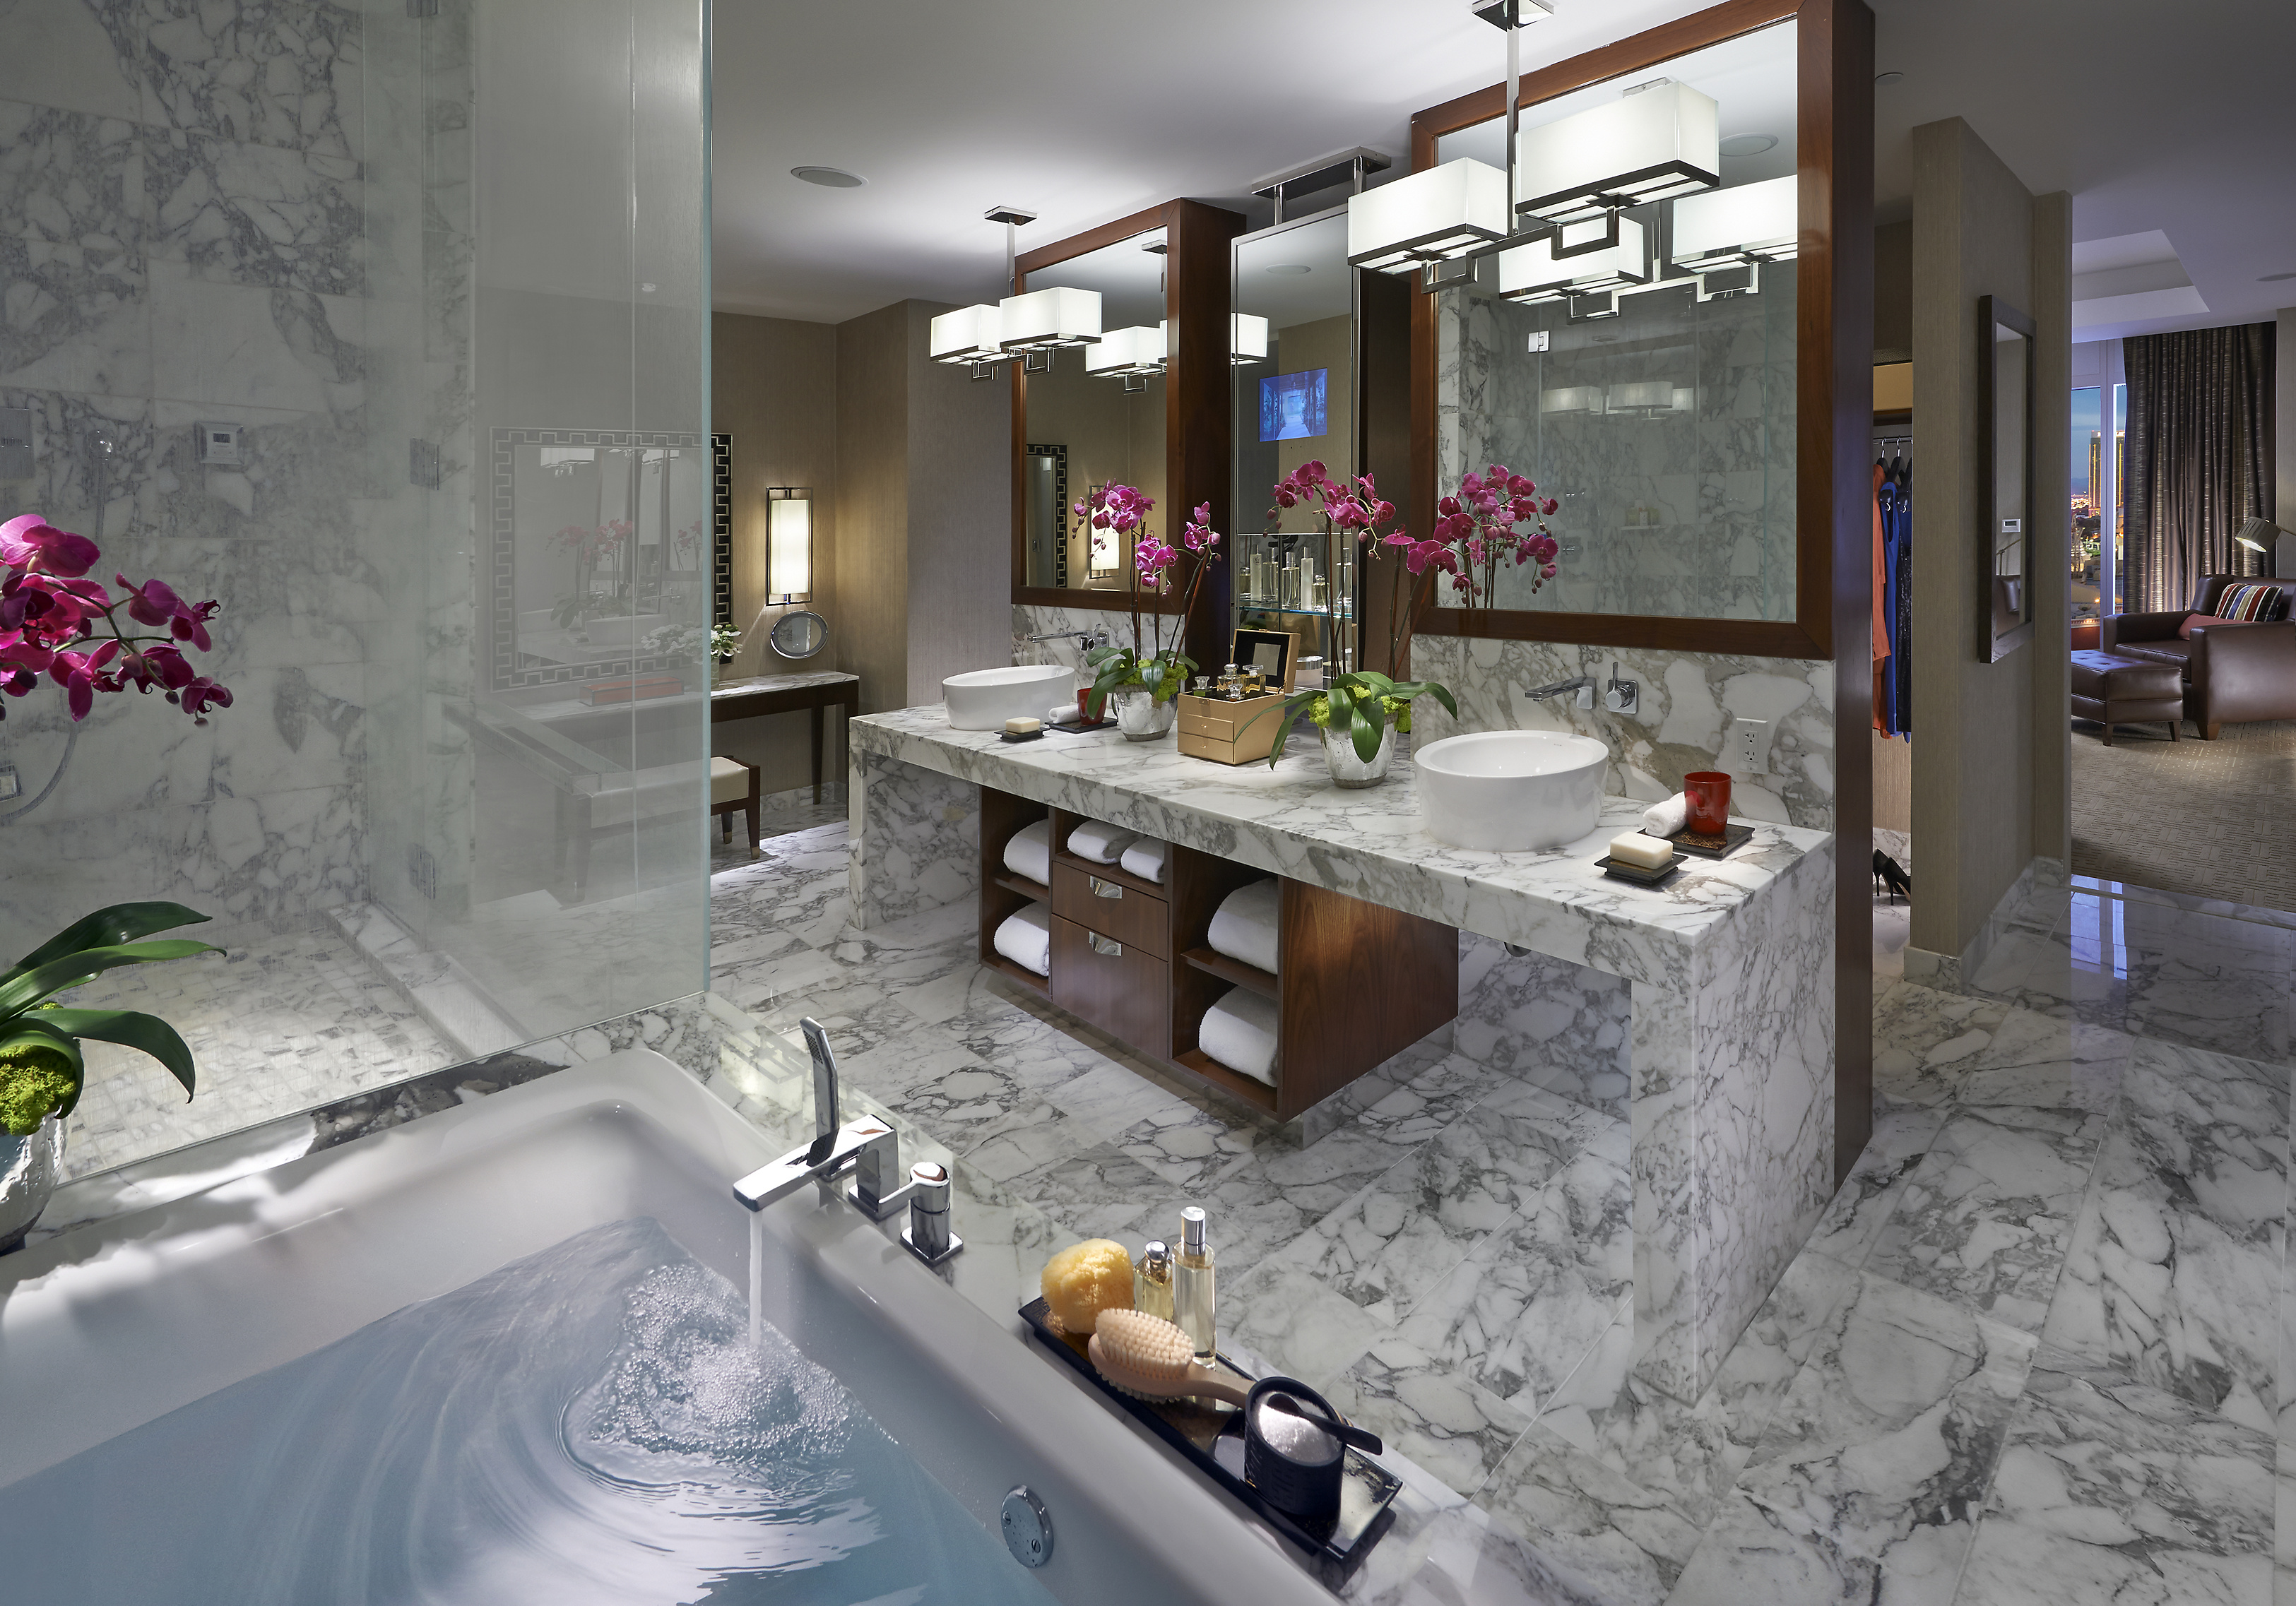 las-vegas-2014-suite-dynasty-suite-bathroom-01